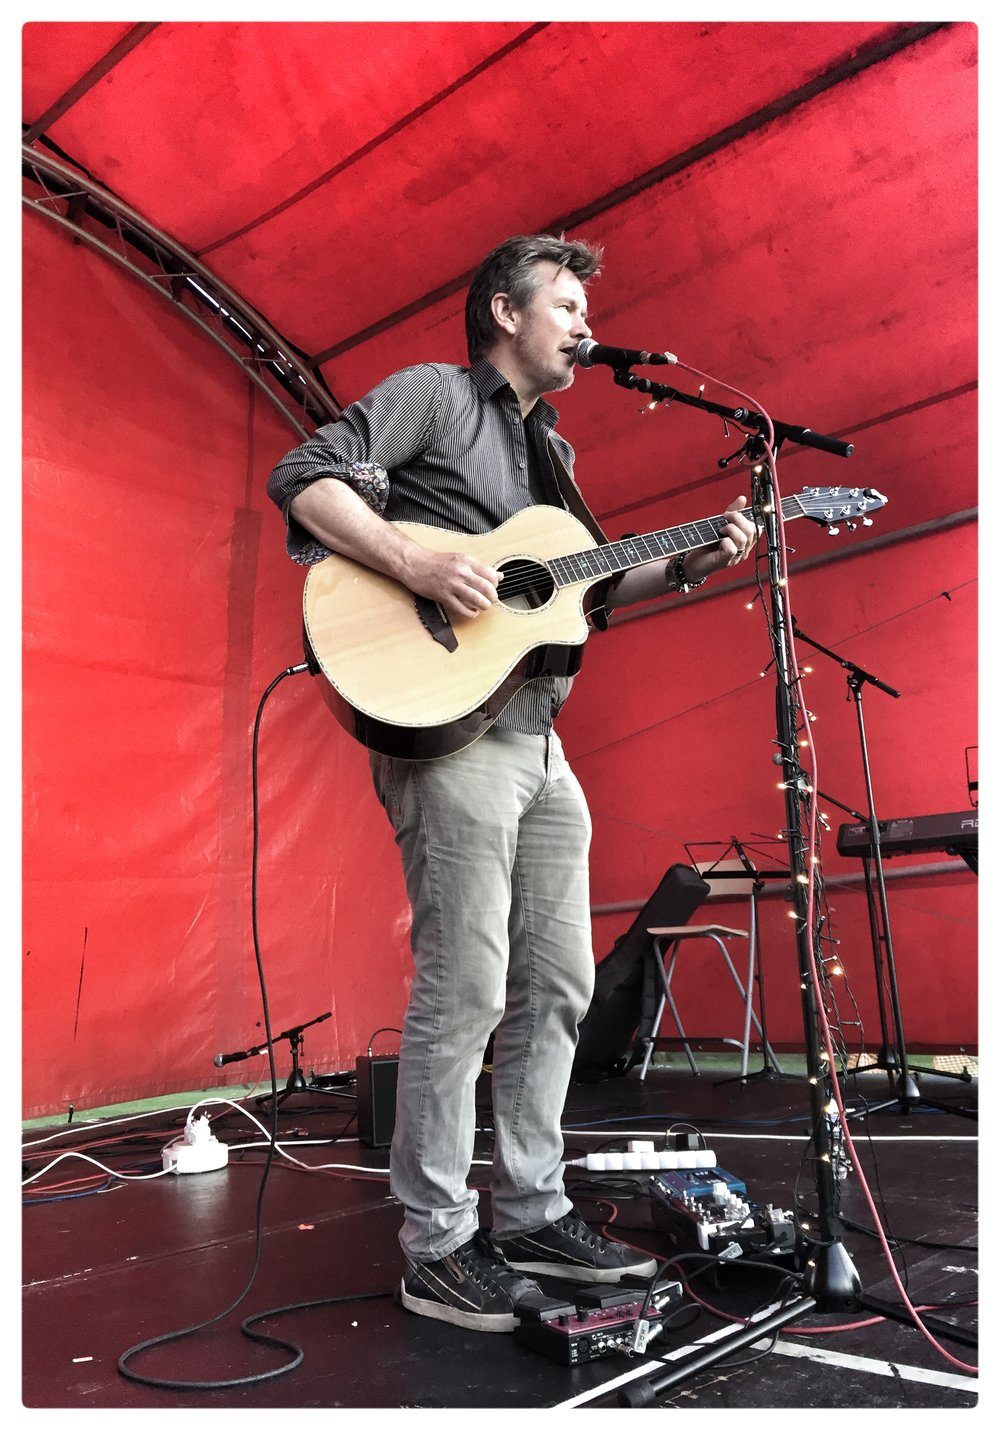 On Stage at The ffennell Festival